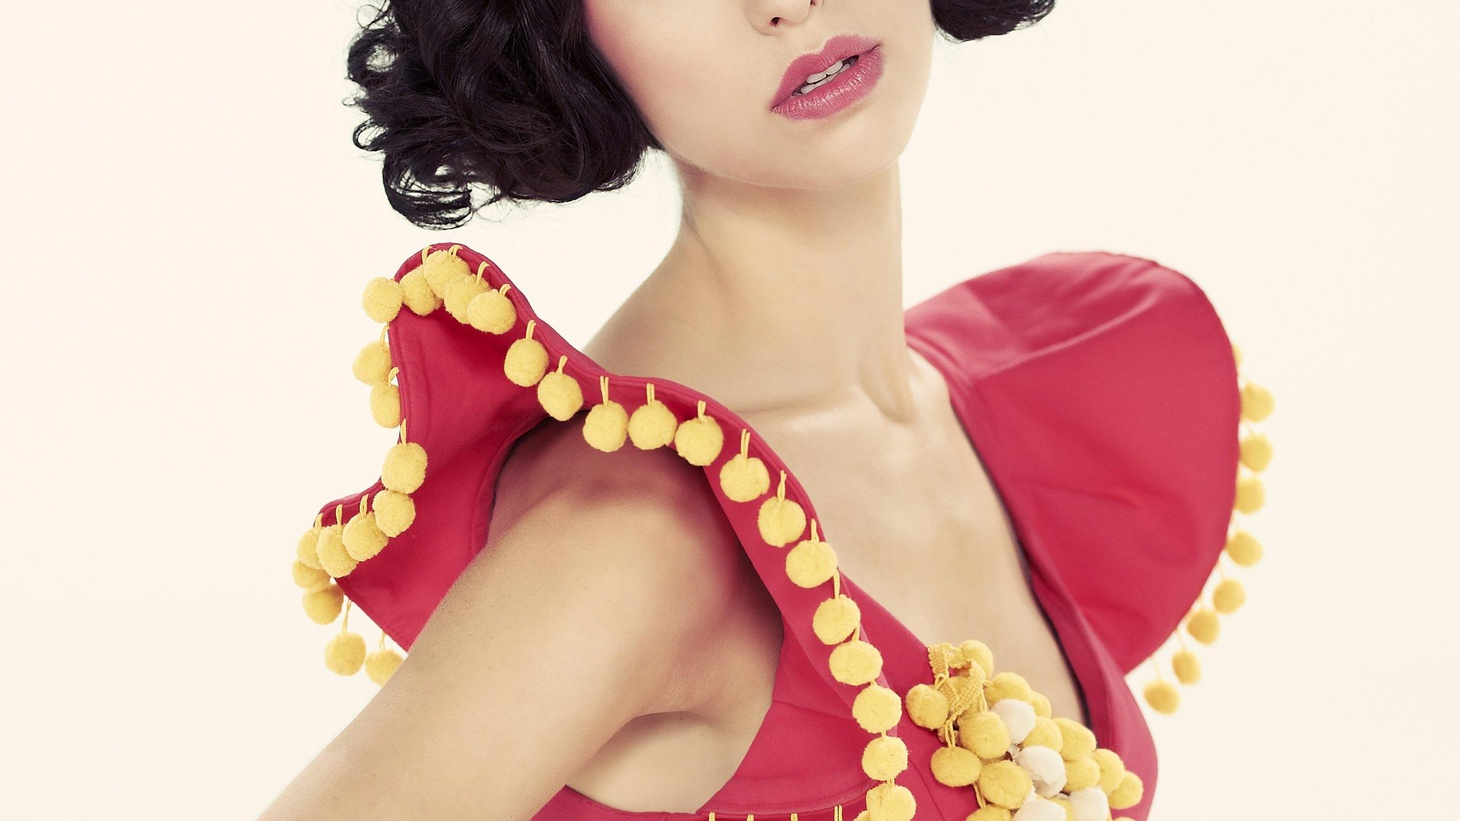 Kimbra is already a pop star in her native New Zealand and we've been falling in love with her voice on her collaborations with Gotye. Now we have some of her solo work...